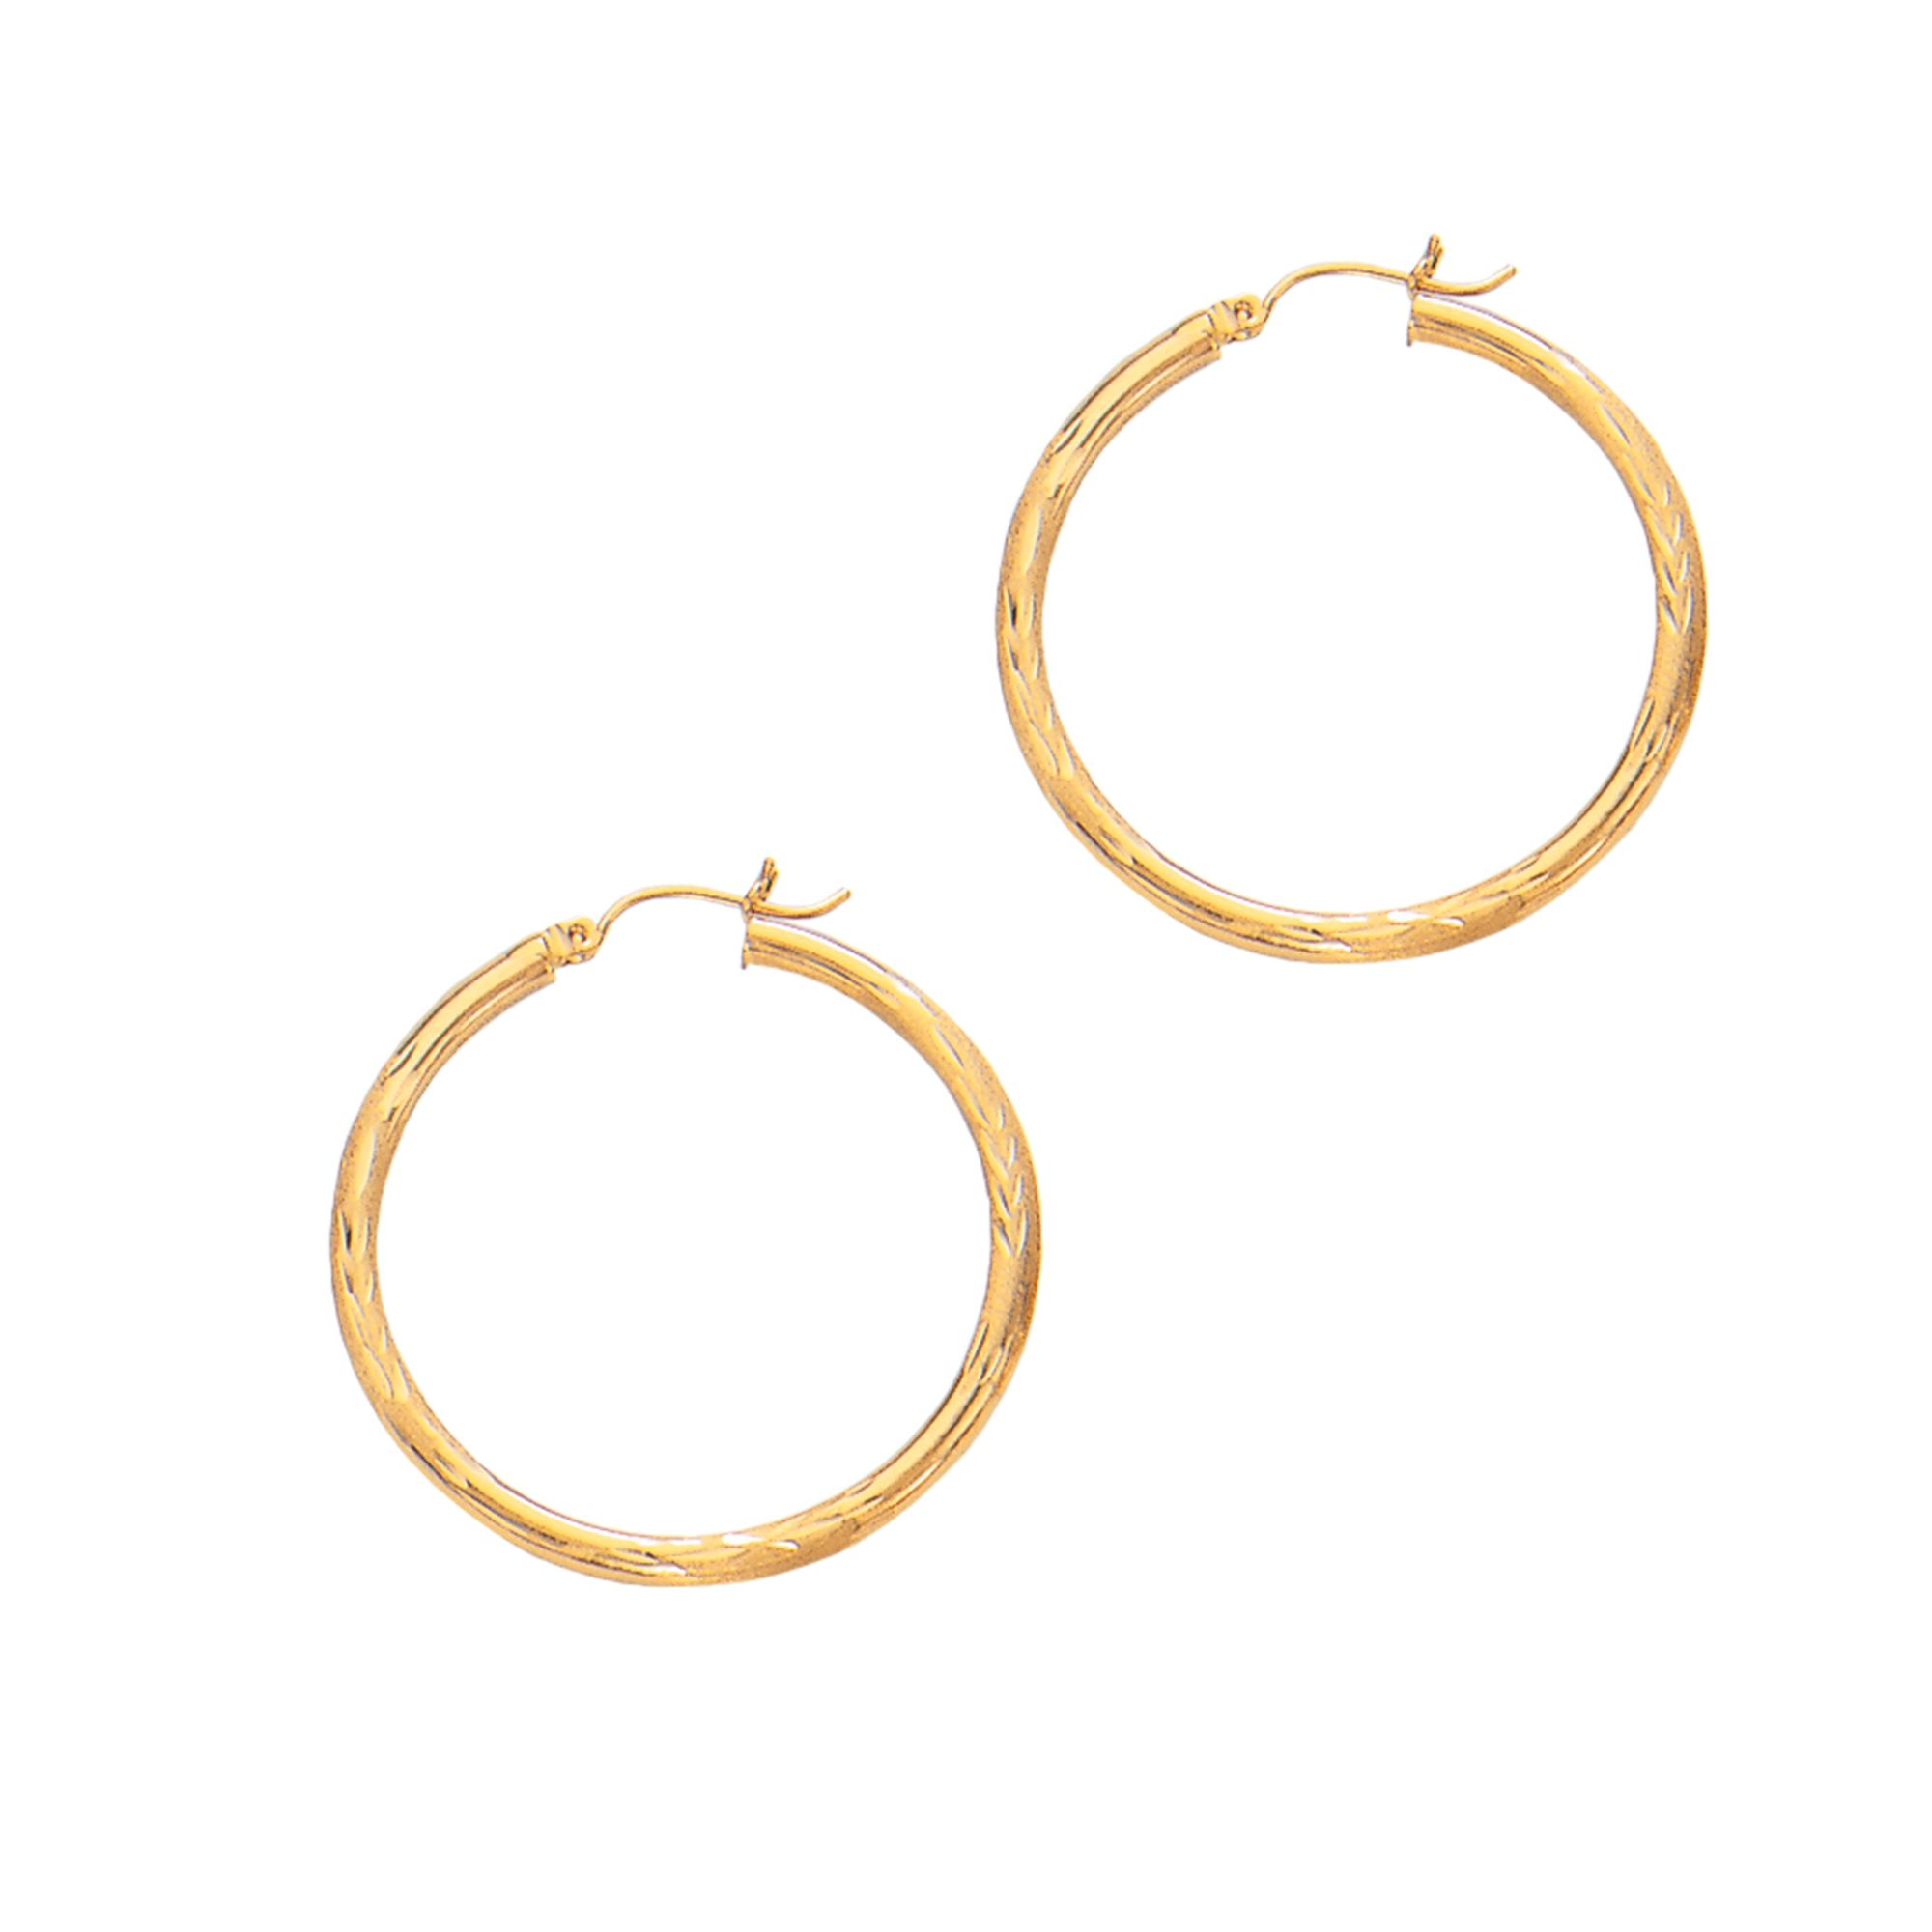 14 Karat Yellow Gold 2 mm Textured Hoop Earrings